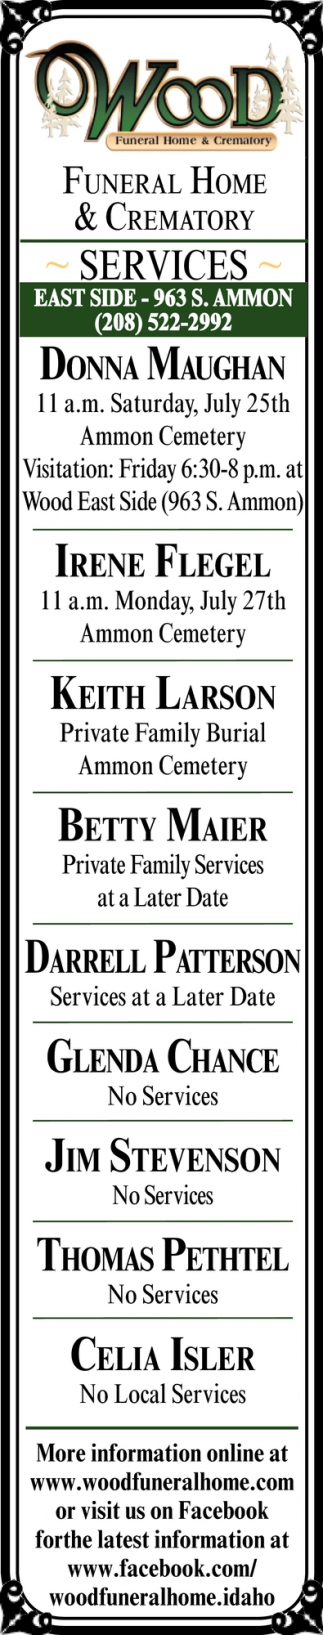 Funeral Home & Crematory